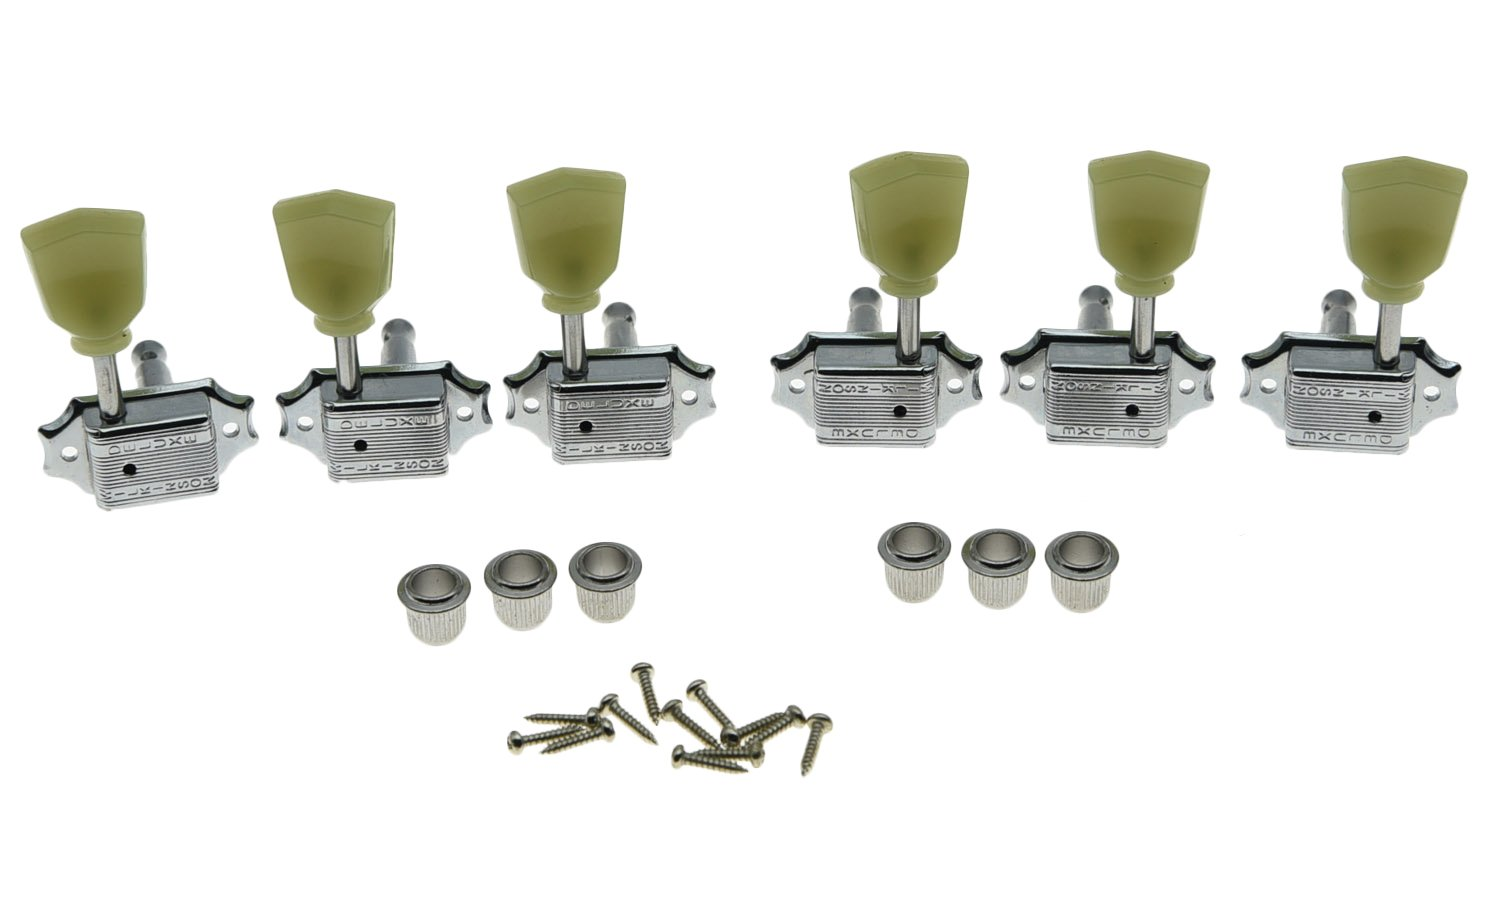 Wilkinson Chrome 3x3 Deluxe Vintage Tuners Tuning Keys Machine Head for Les Paul T376